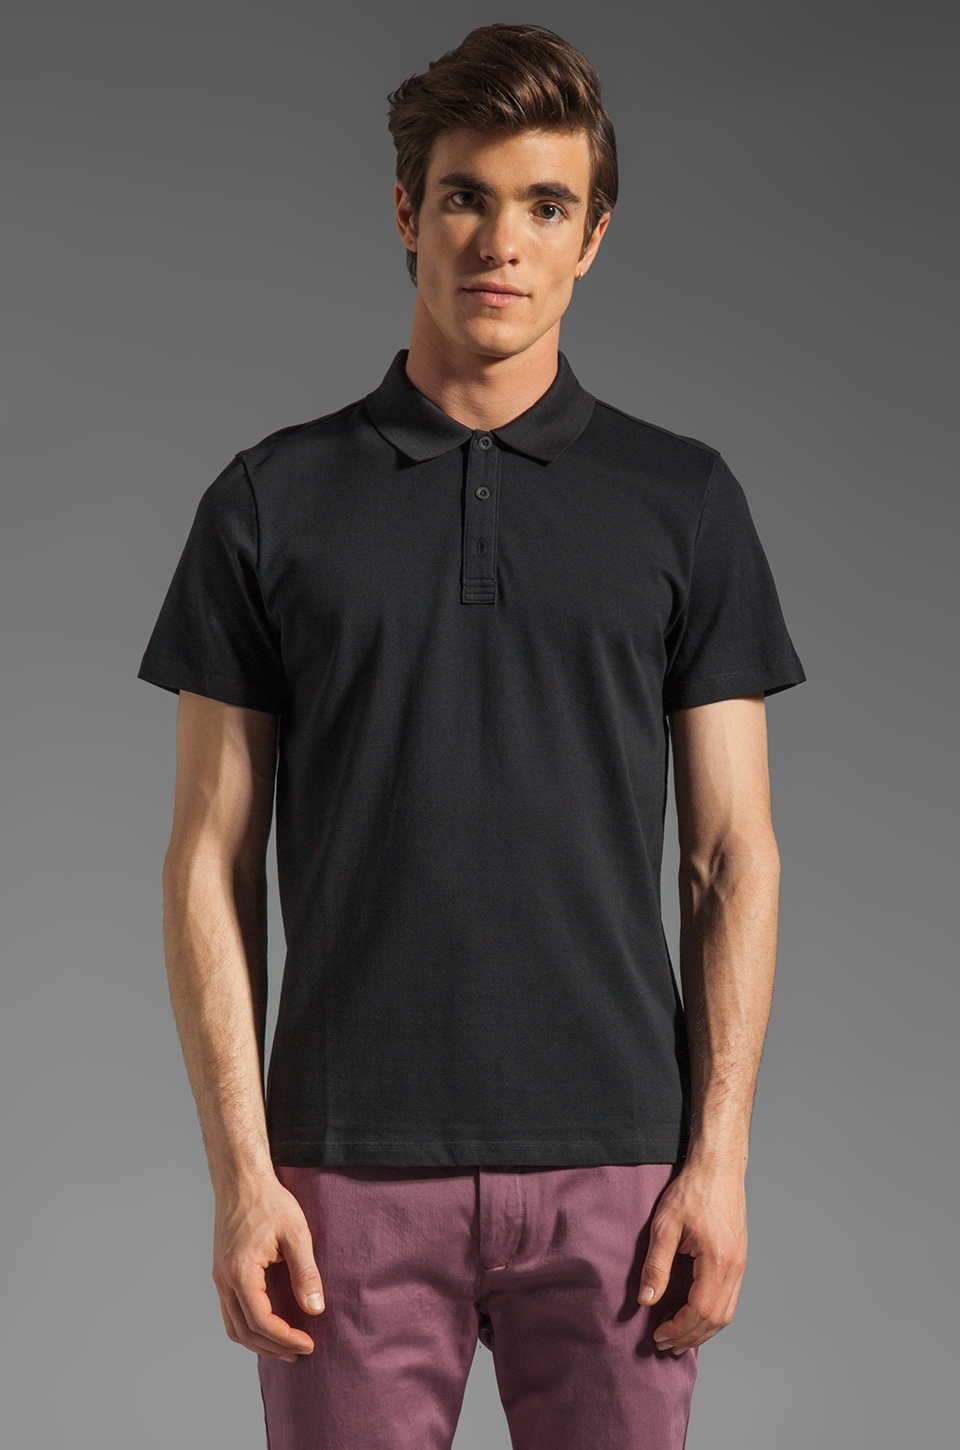 Theory Leopold NC. Classic Pique Polo in Black